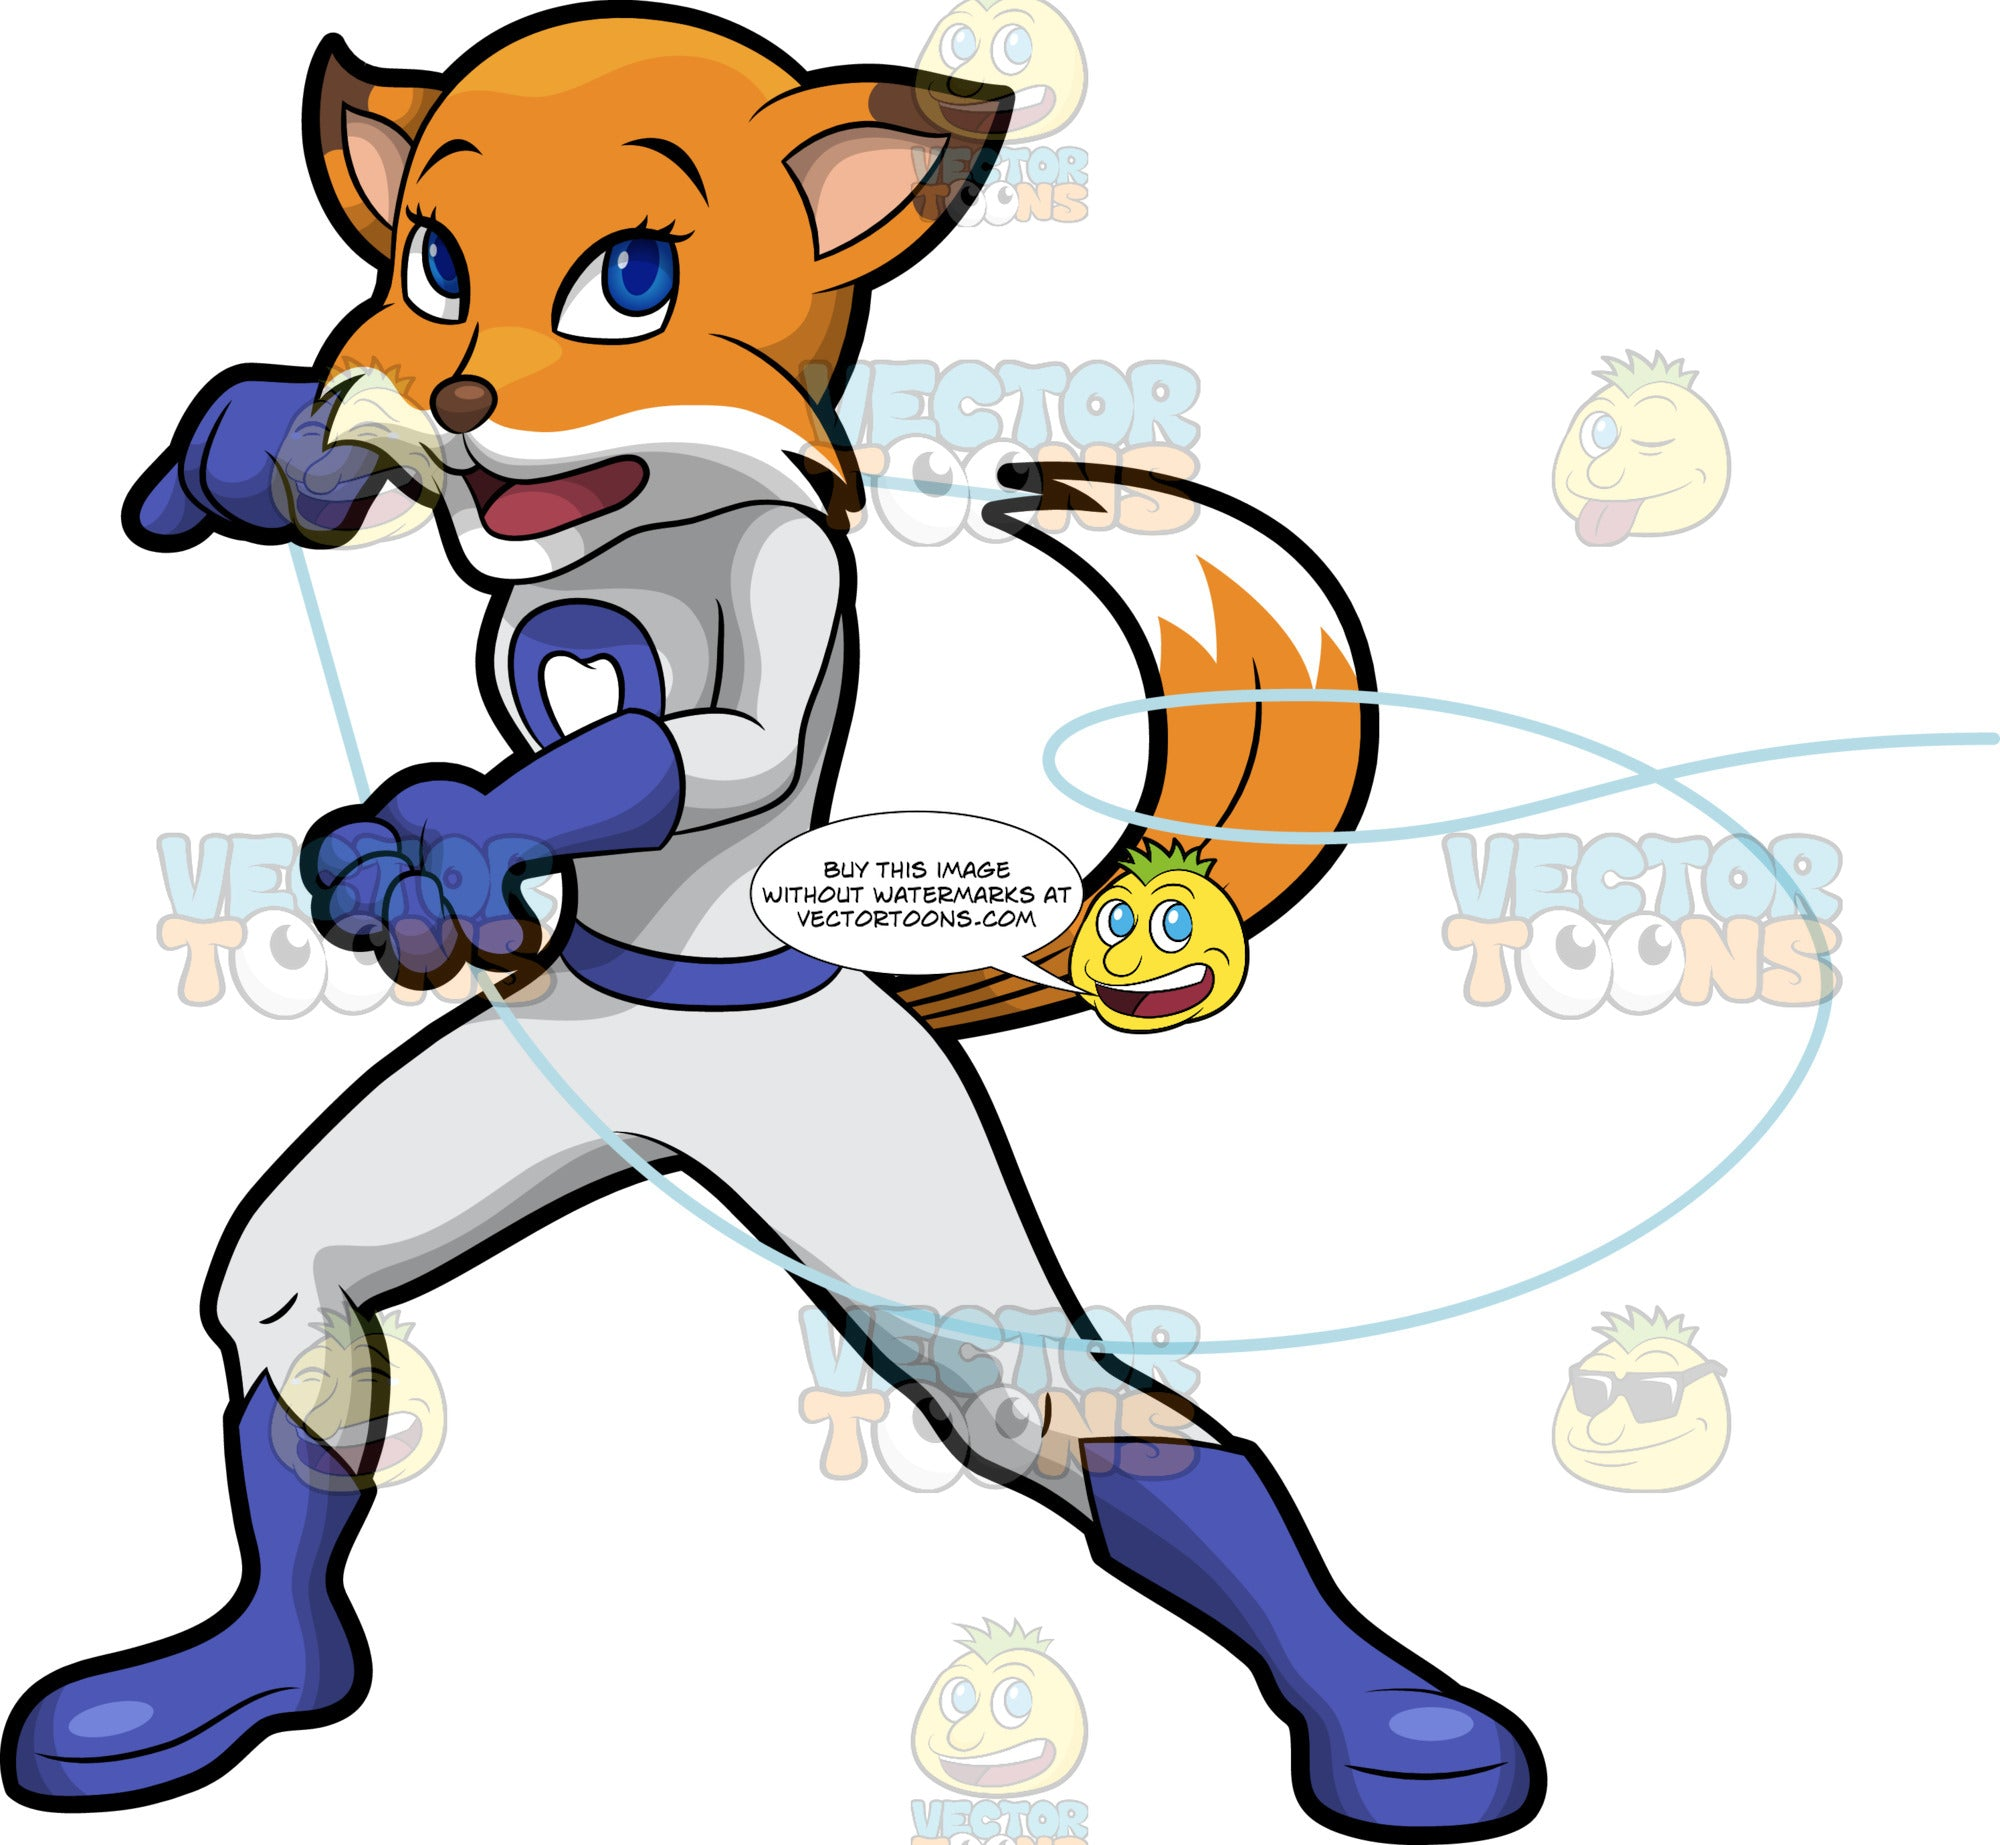 Flossy Fox Using A Long Piece Of Dental Floss As A Lasso. A pretty red fox wearing a fitted white one piece outfit with blue boots and gloves, and a tooth symbol on the chest, standing and whipping out a long piece of dental floss like a lasso